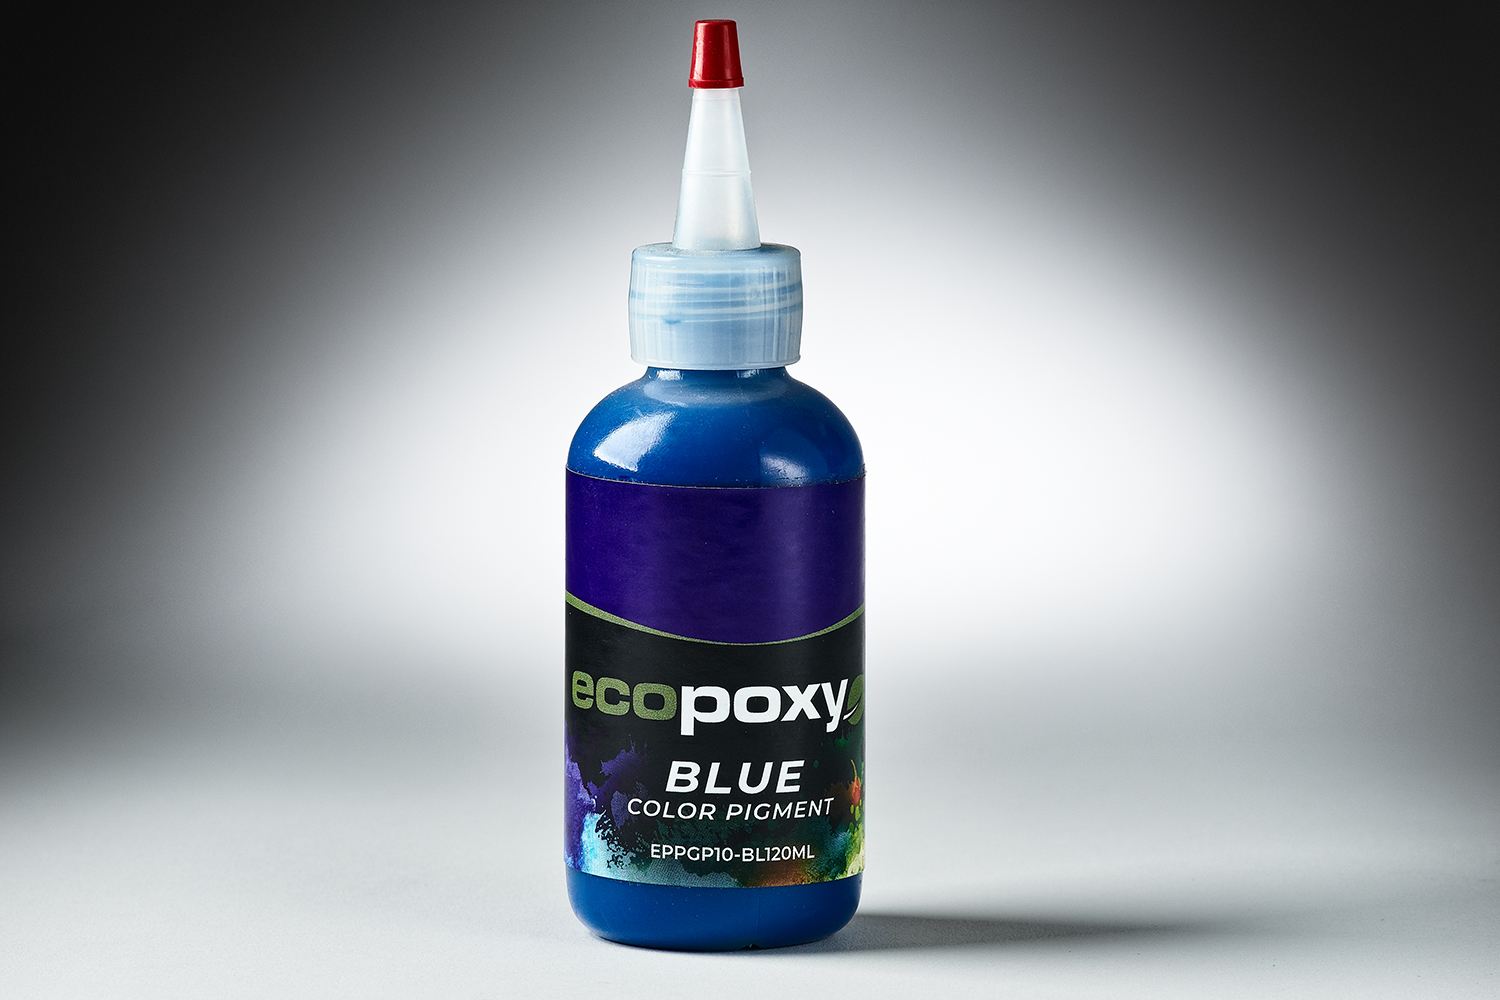 570024 #EPPGP10 BL120ml EcopoxyColorPigment Blue 120ml 6422